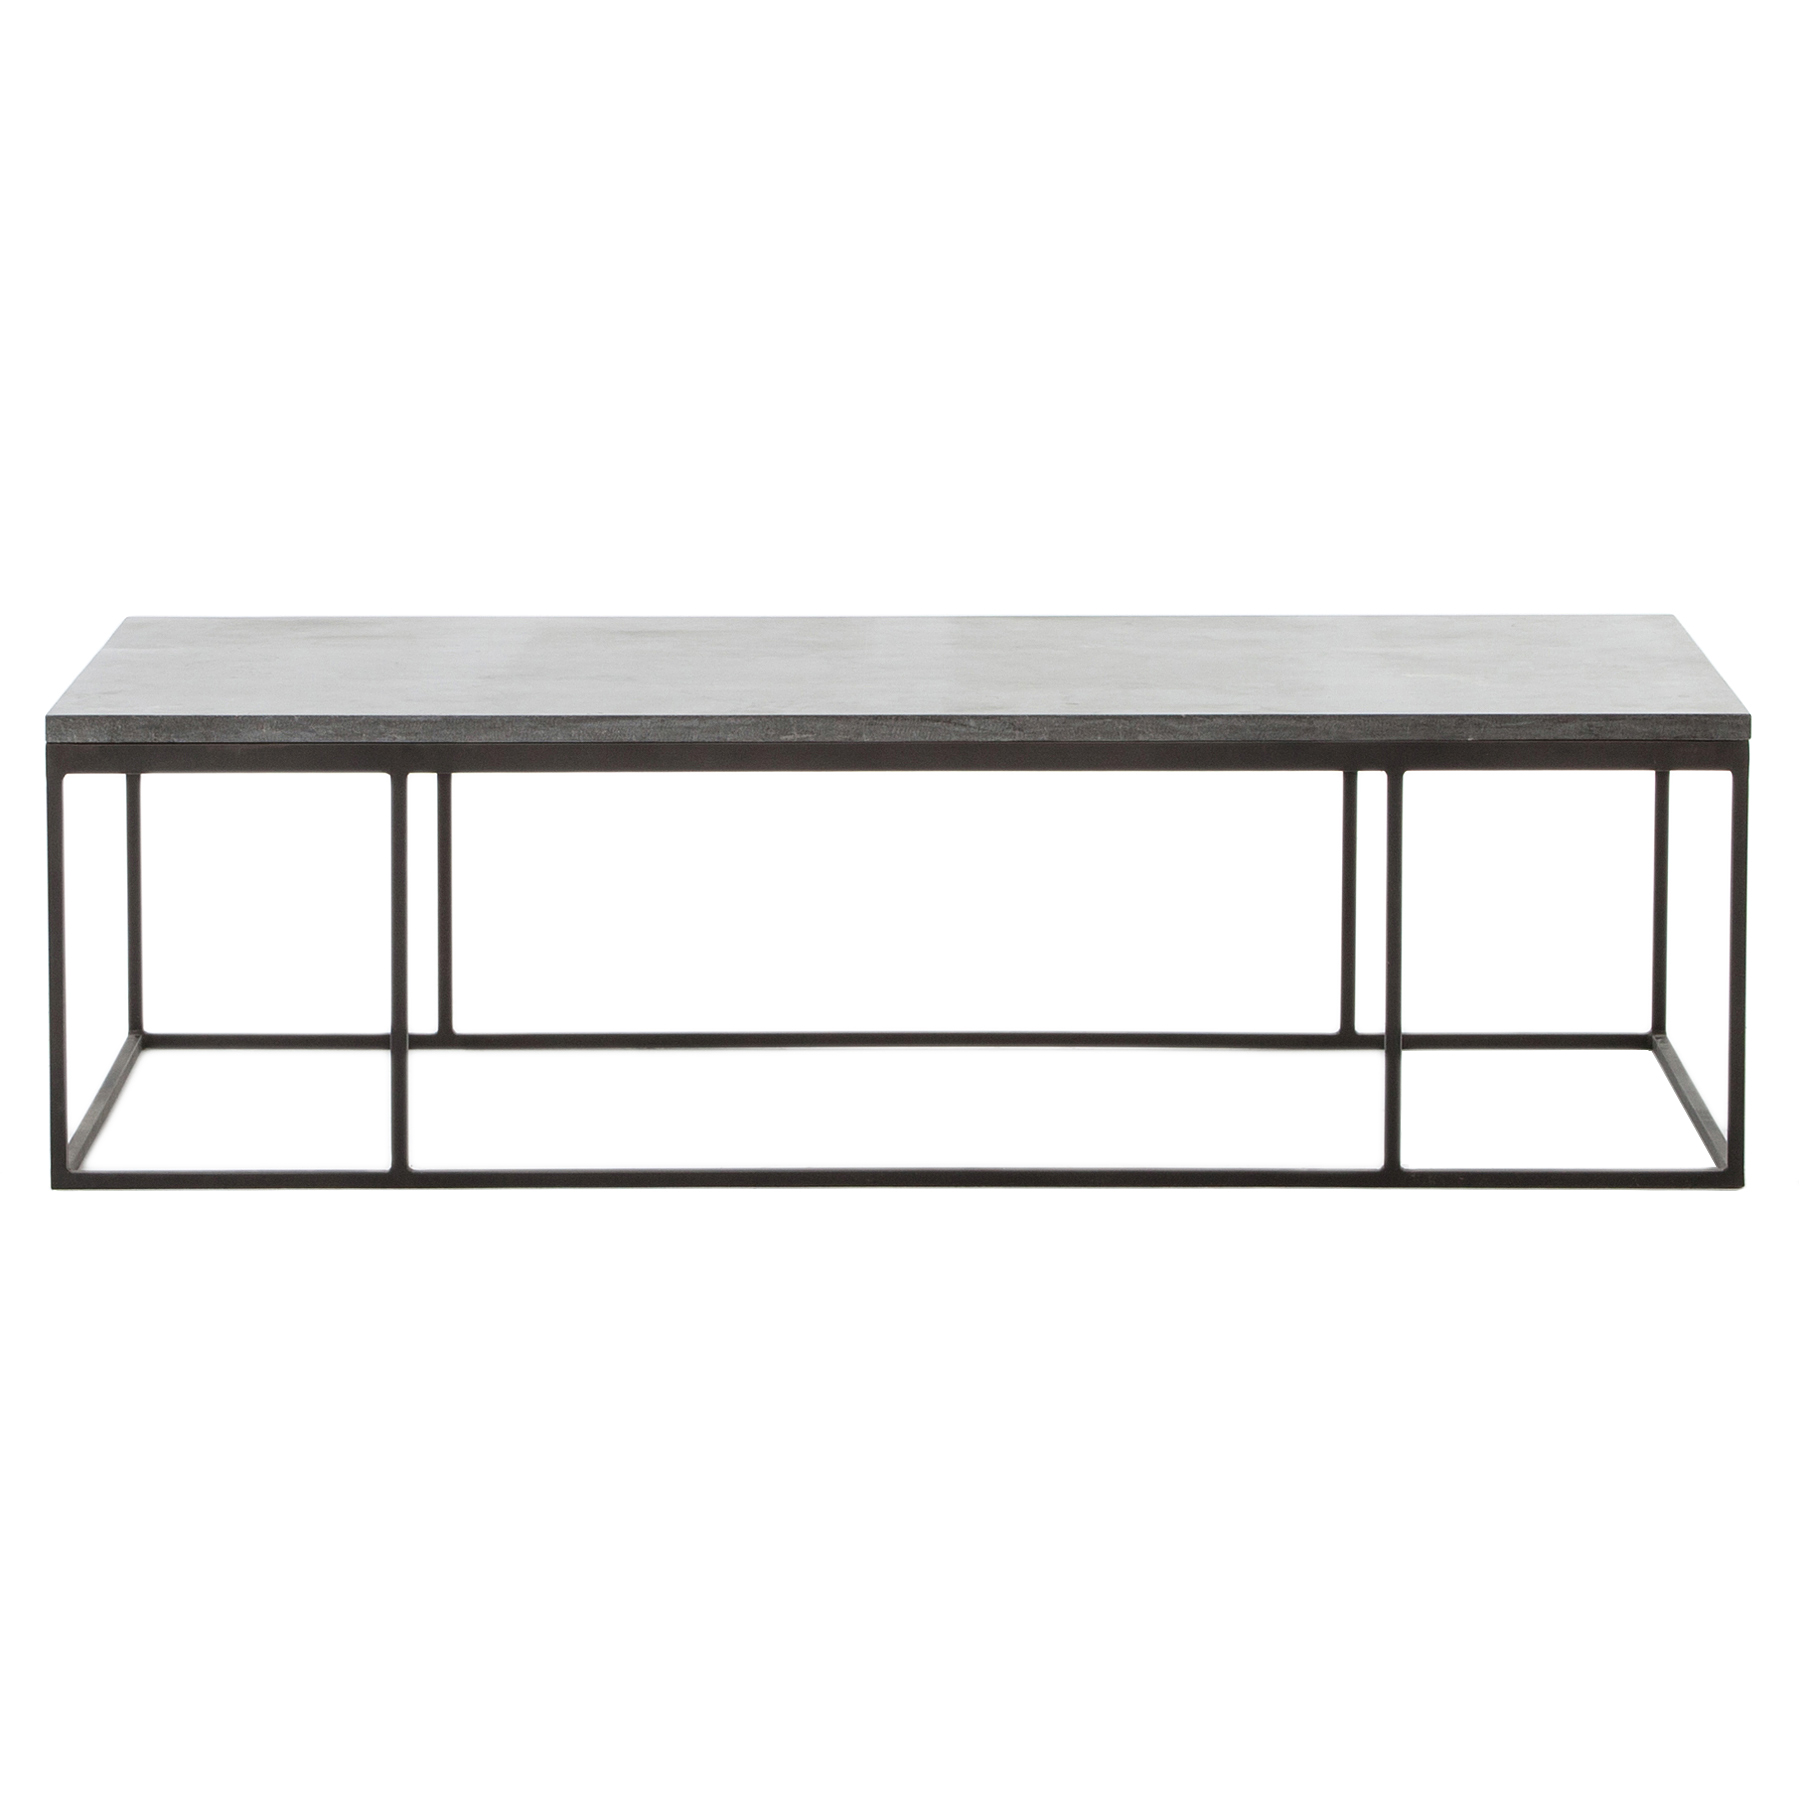 Shuler Loft Iron Bluestone Rectangular Coffee Table